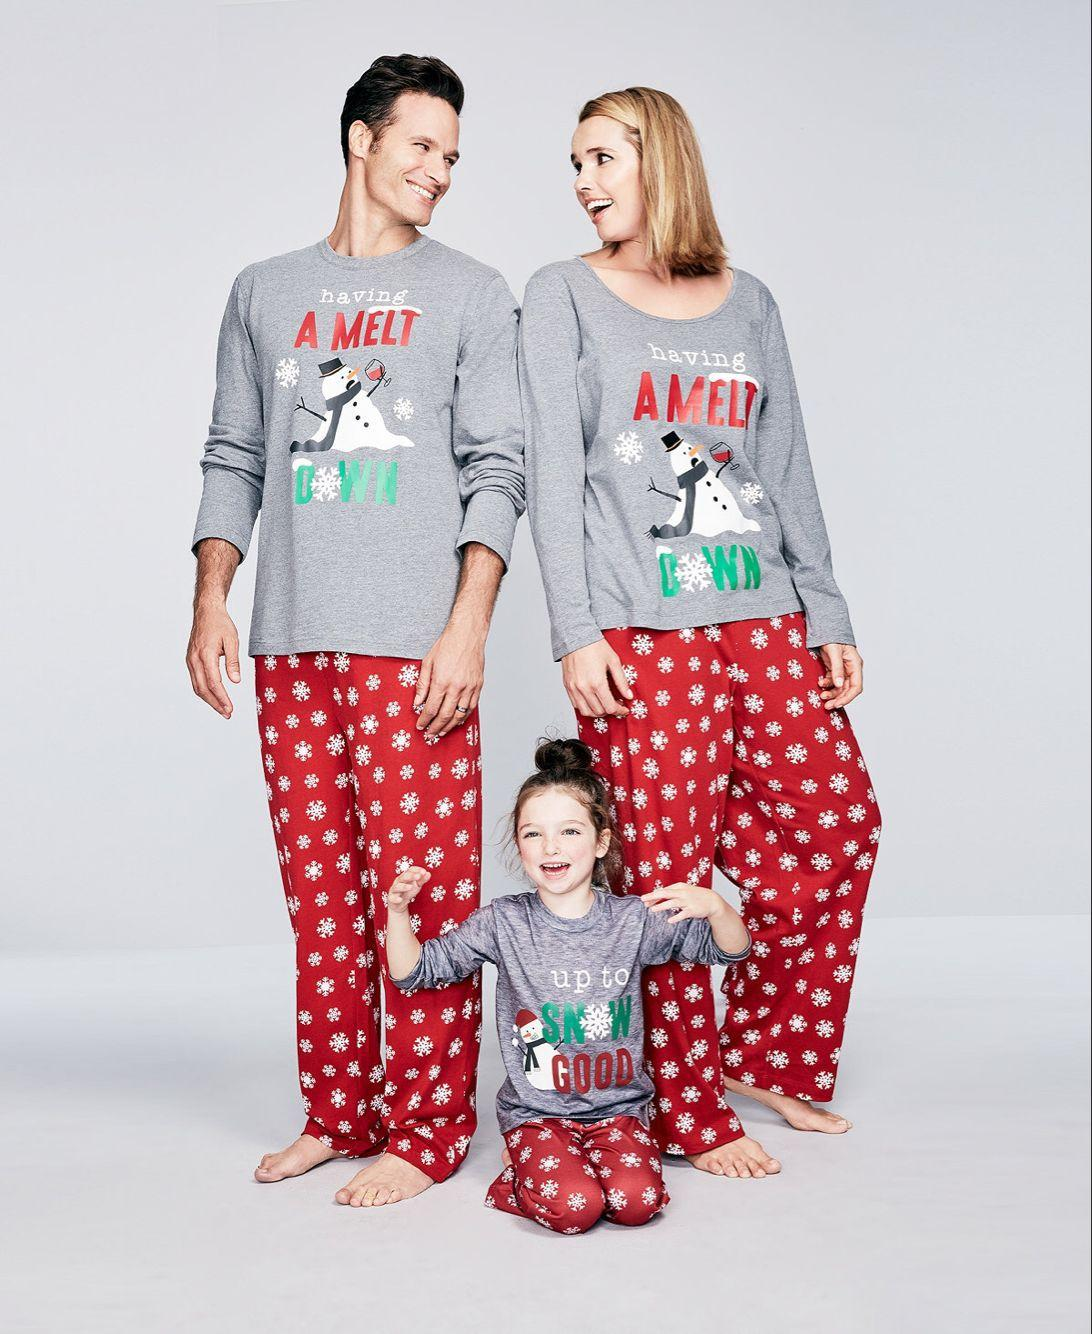 438cfac4510b Family Matching Christmas Pajamas Set Up To Snow Goodandhaving A Melt  DownTops And Long Pants Sleepwear For Family Matching Shirts For Family  Family ...